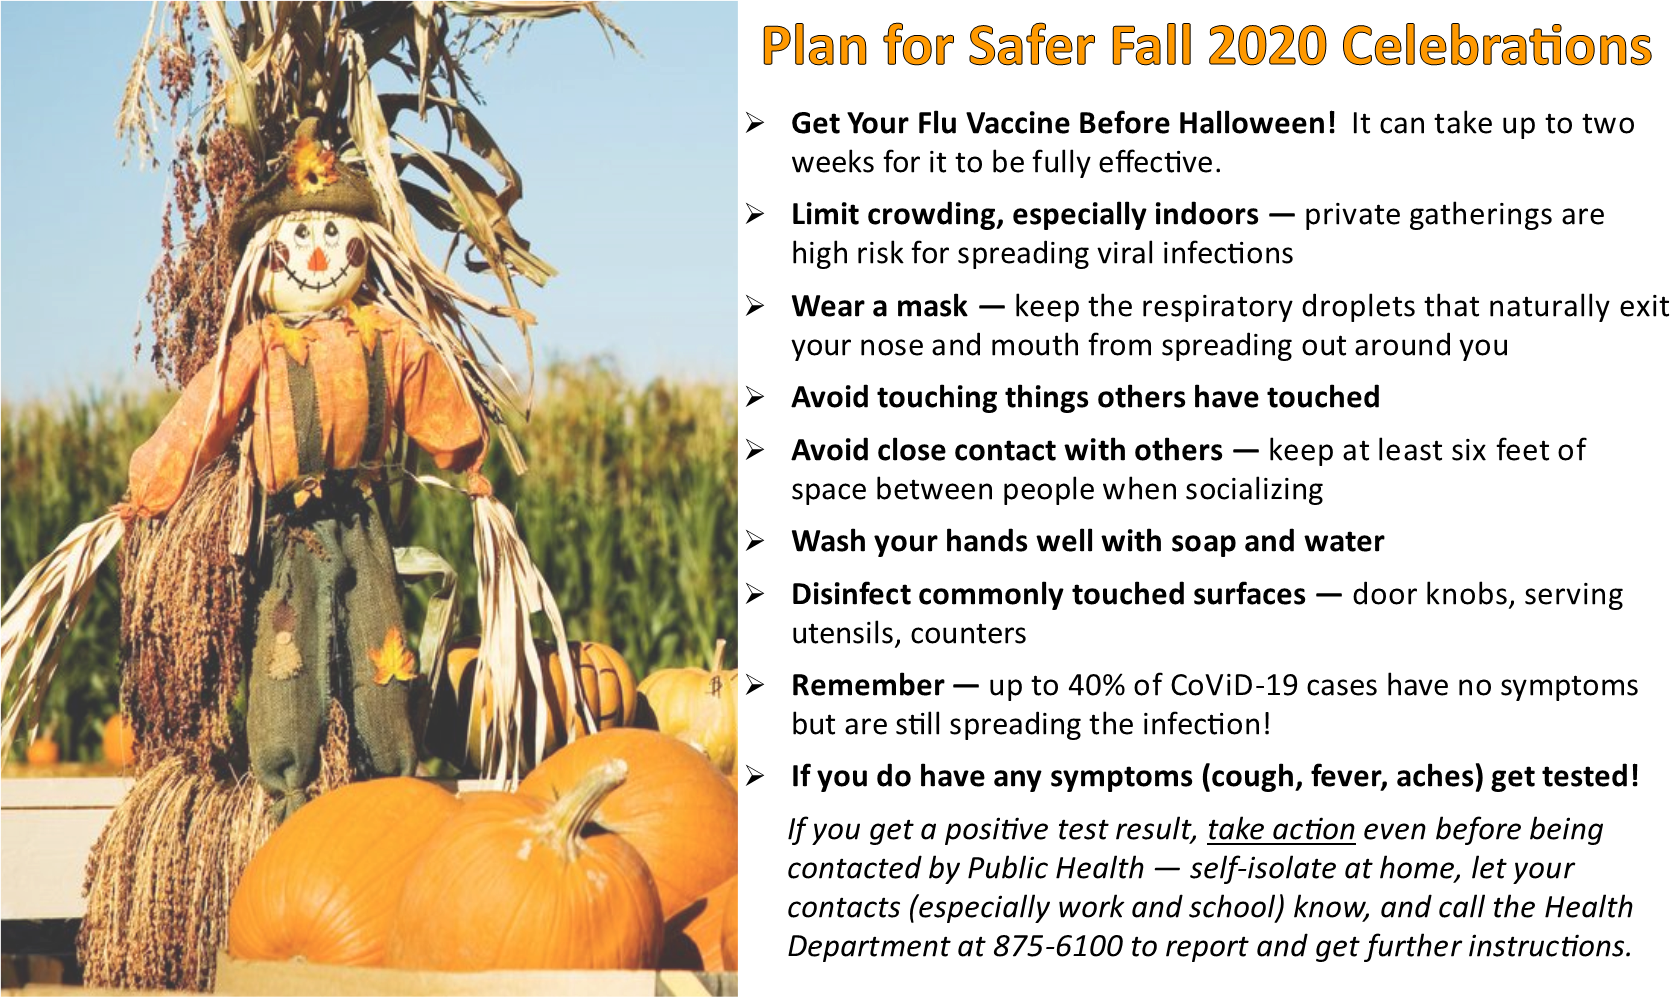 Fall Celebration Safety Tips to Stop Spreading Respiratory Viruses